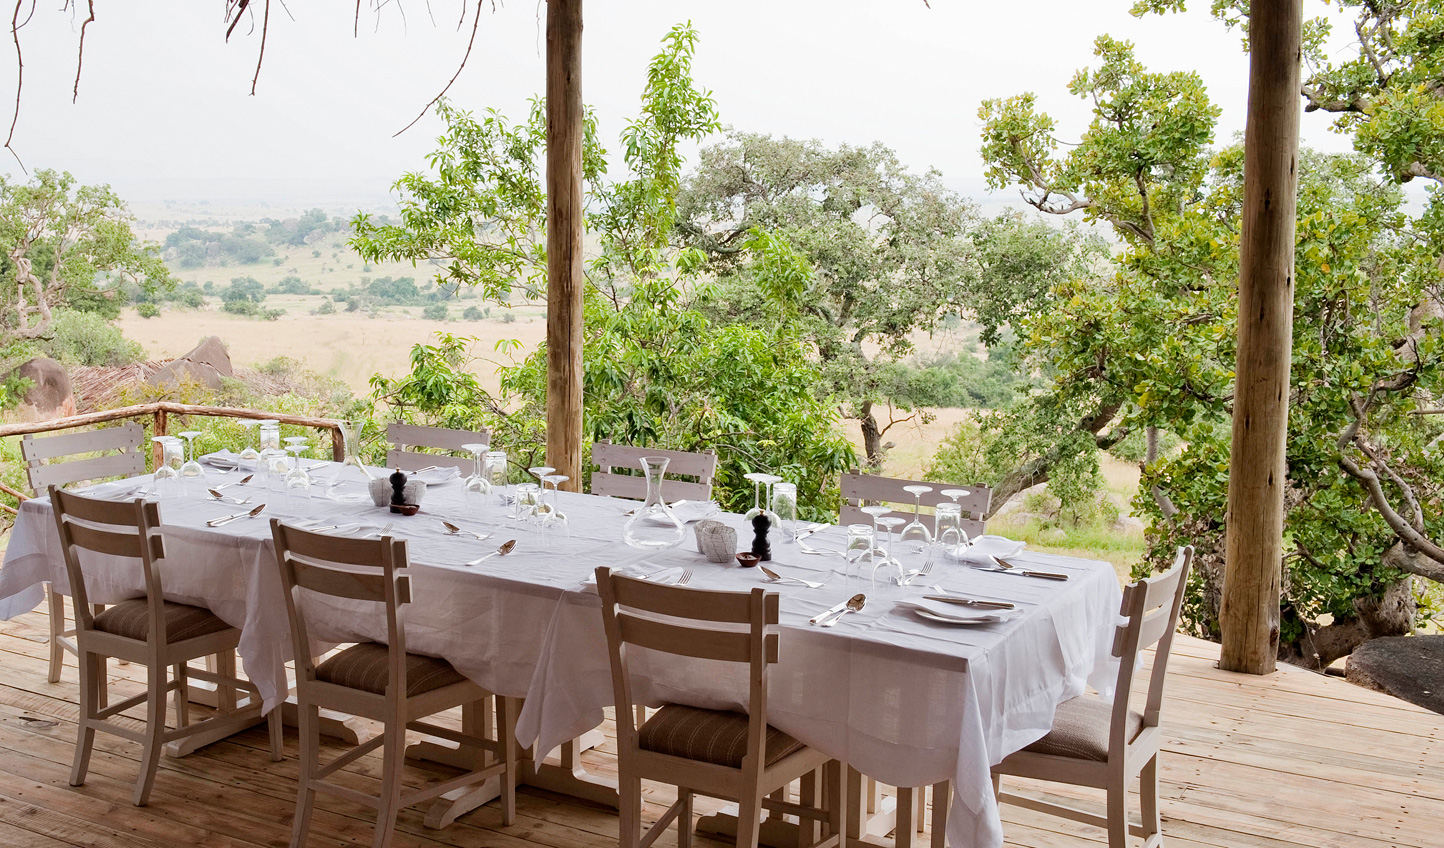 Dine al fresco with views across the plains